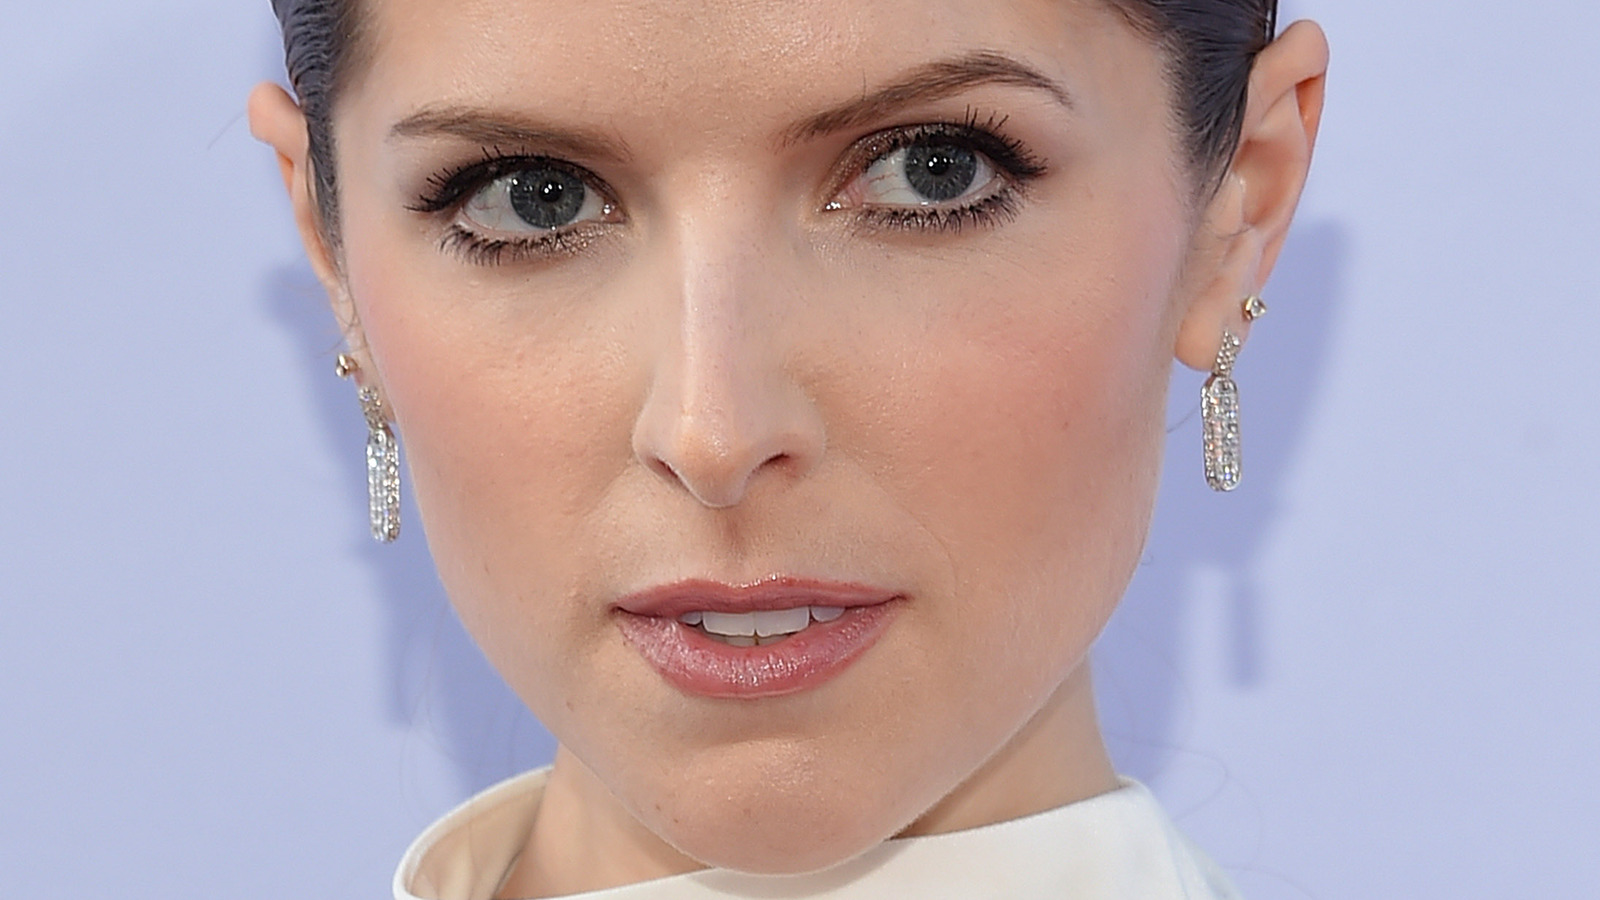 Are Anna Kendrick And Rebel Wilson Friends In Real Life? - Nicki Swift